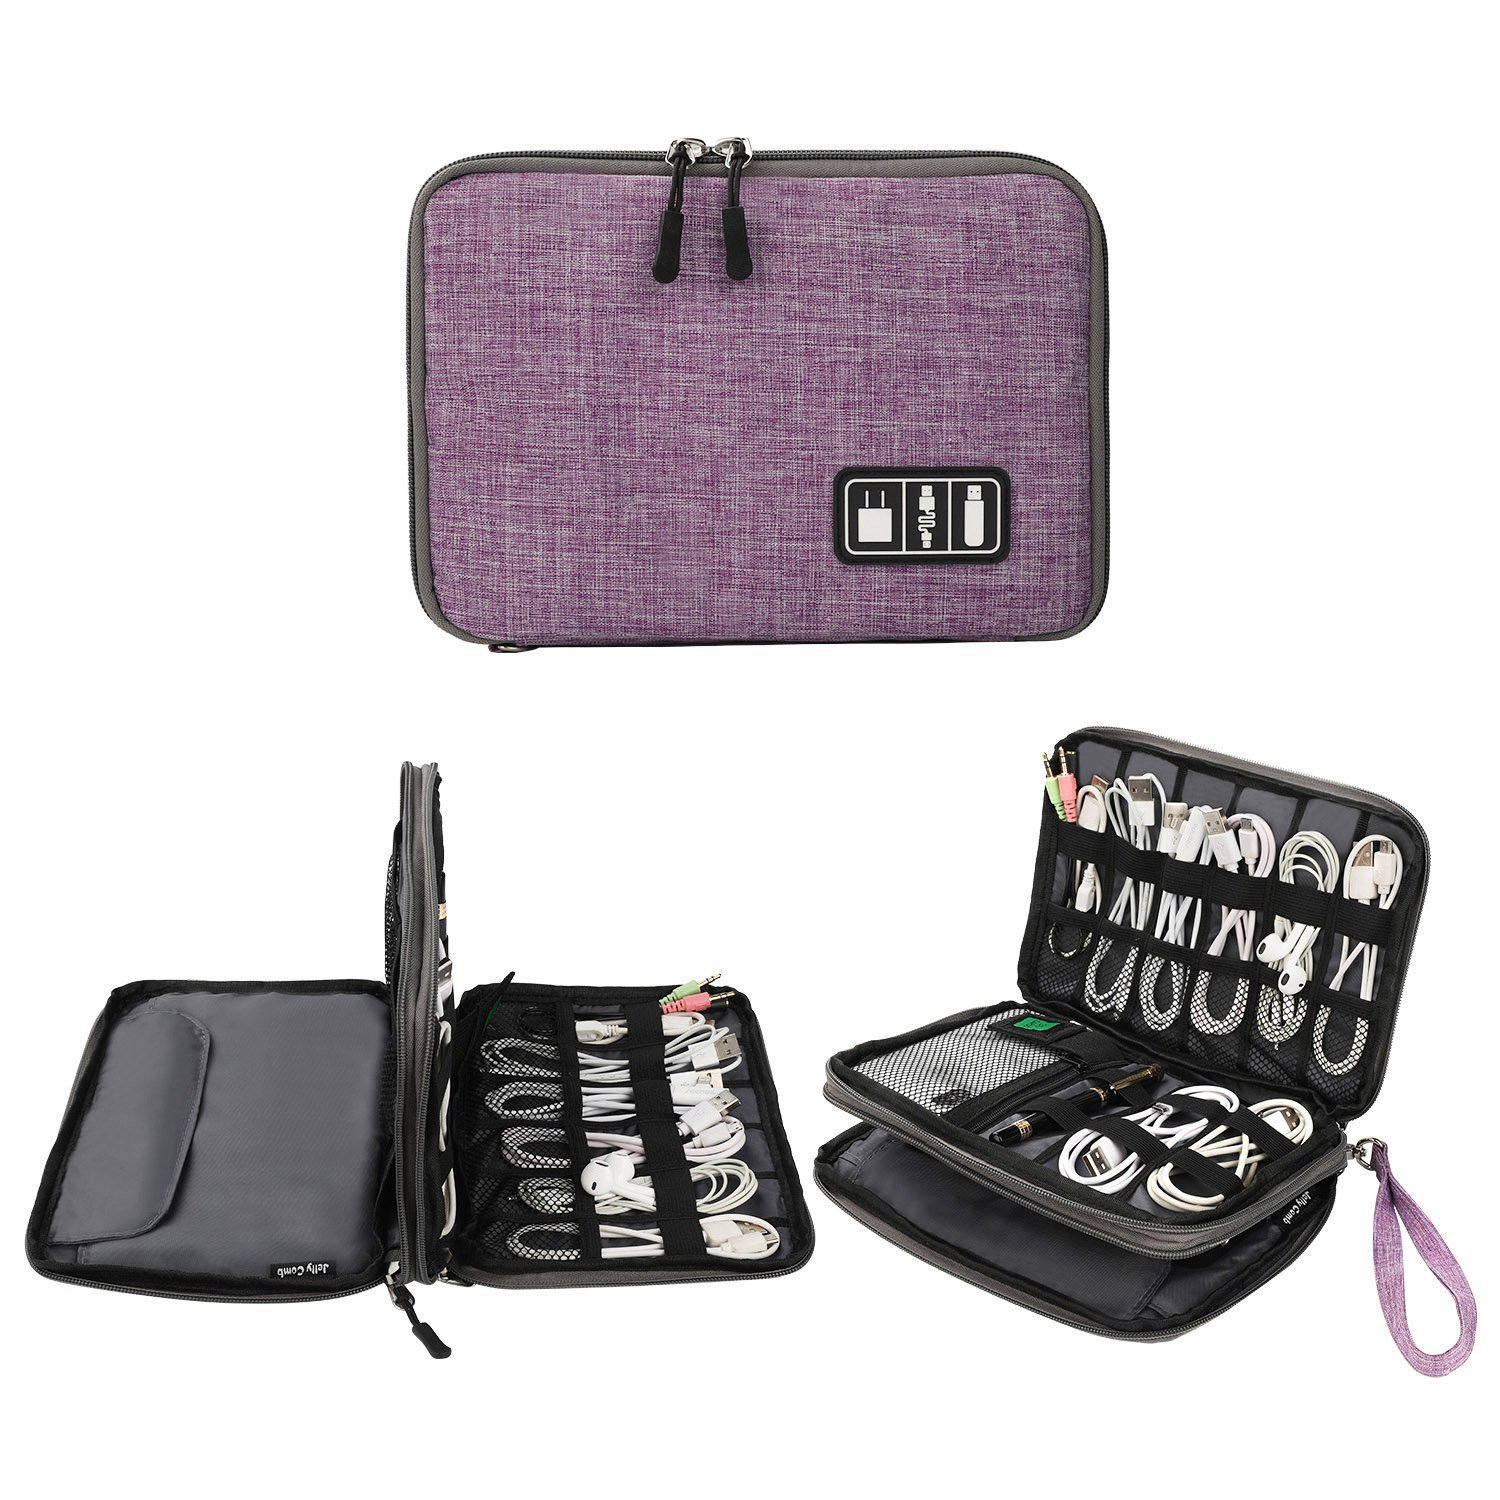 Electronics Organizer, Jelly Comb Electronic Accessories Cable Organizer Bag Waterproof Travel Cable Storage Bag for Charging Cable, Cellphone, Mini Tablet and More (Purple and Gray)